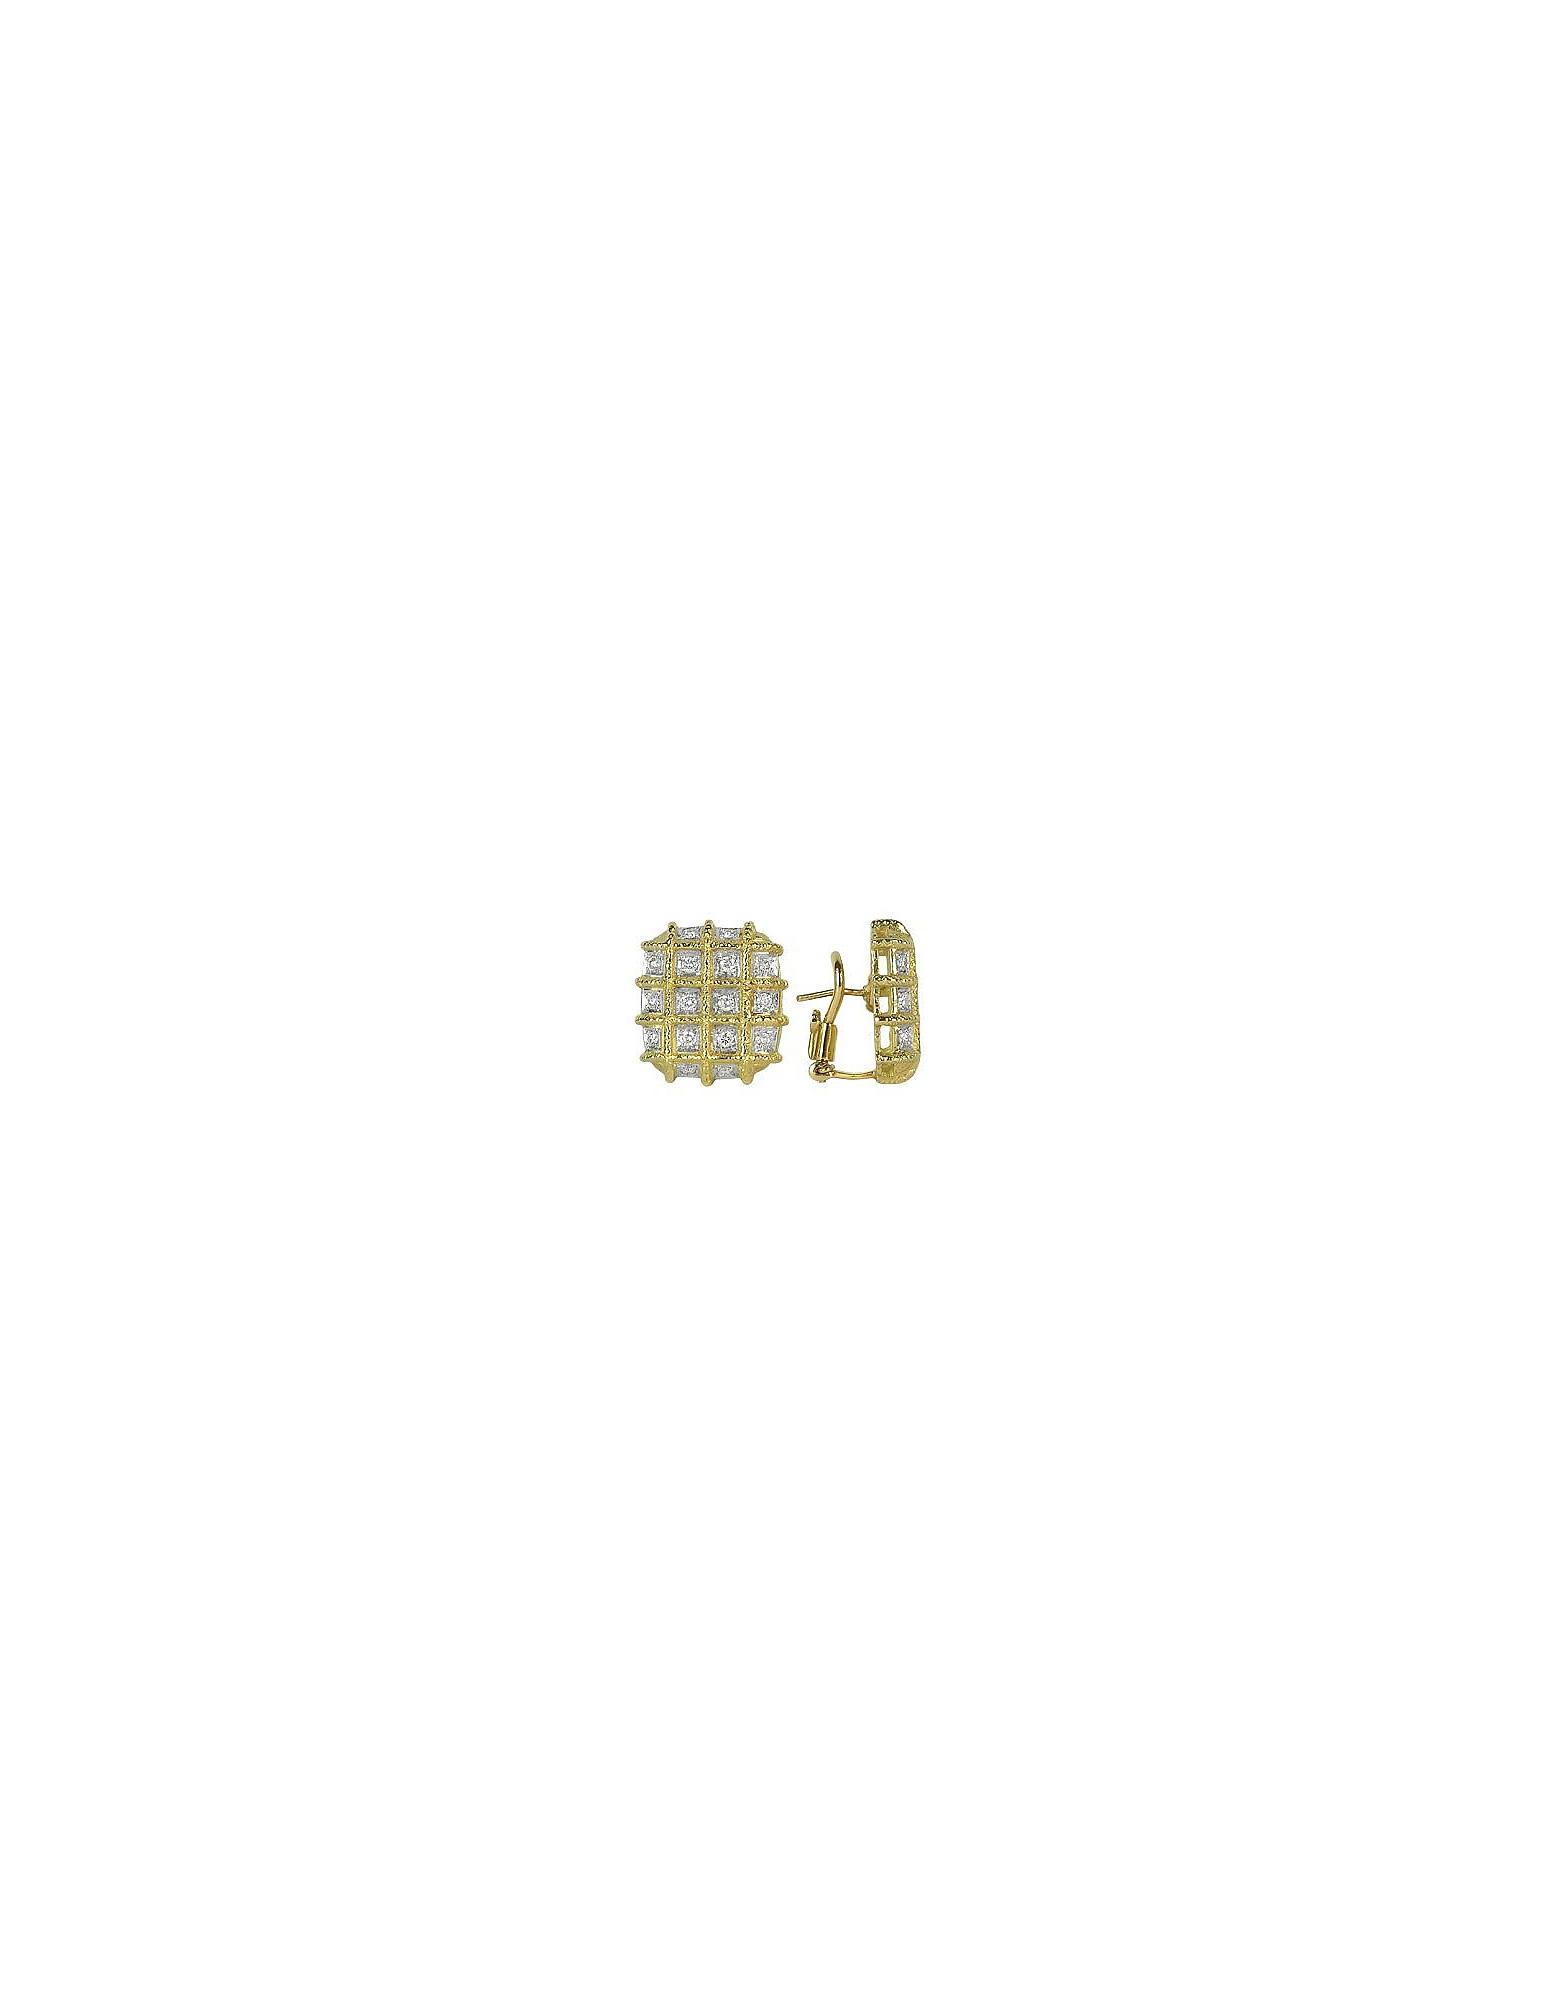 Torrini Earrings, Wallstreet - 18K Yellow Gold Diamond Earrings